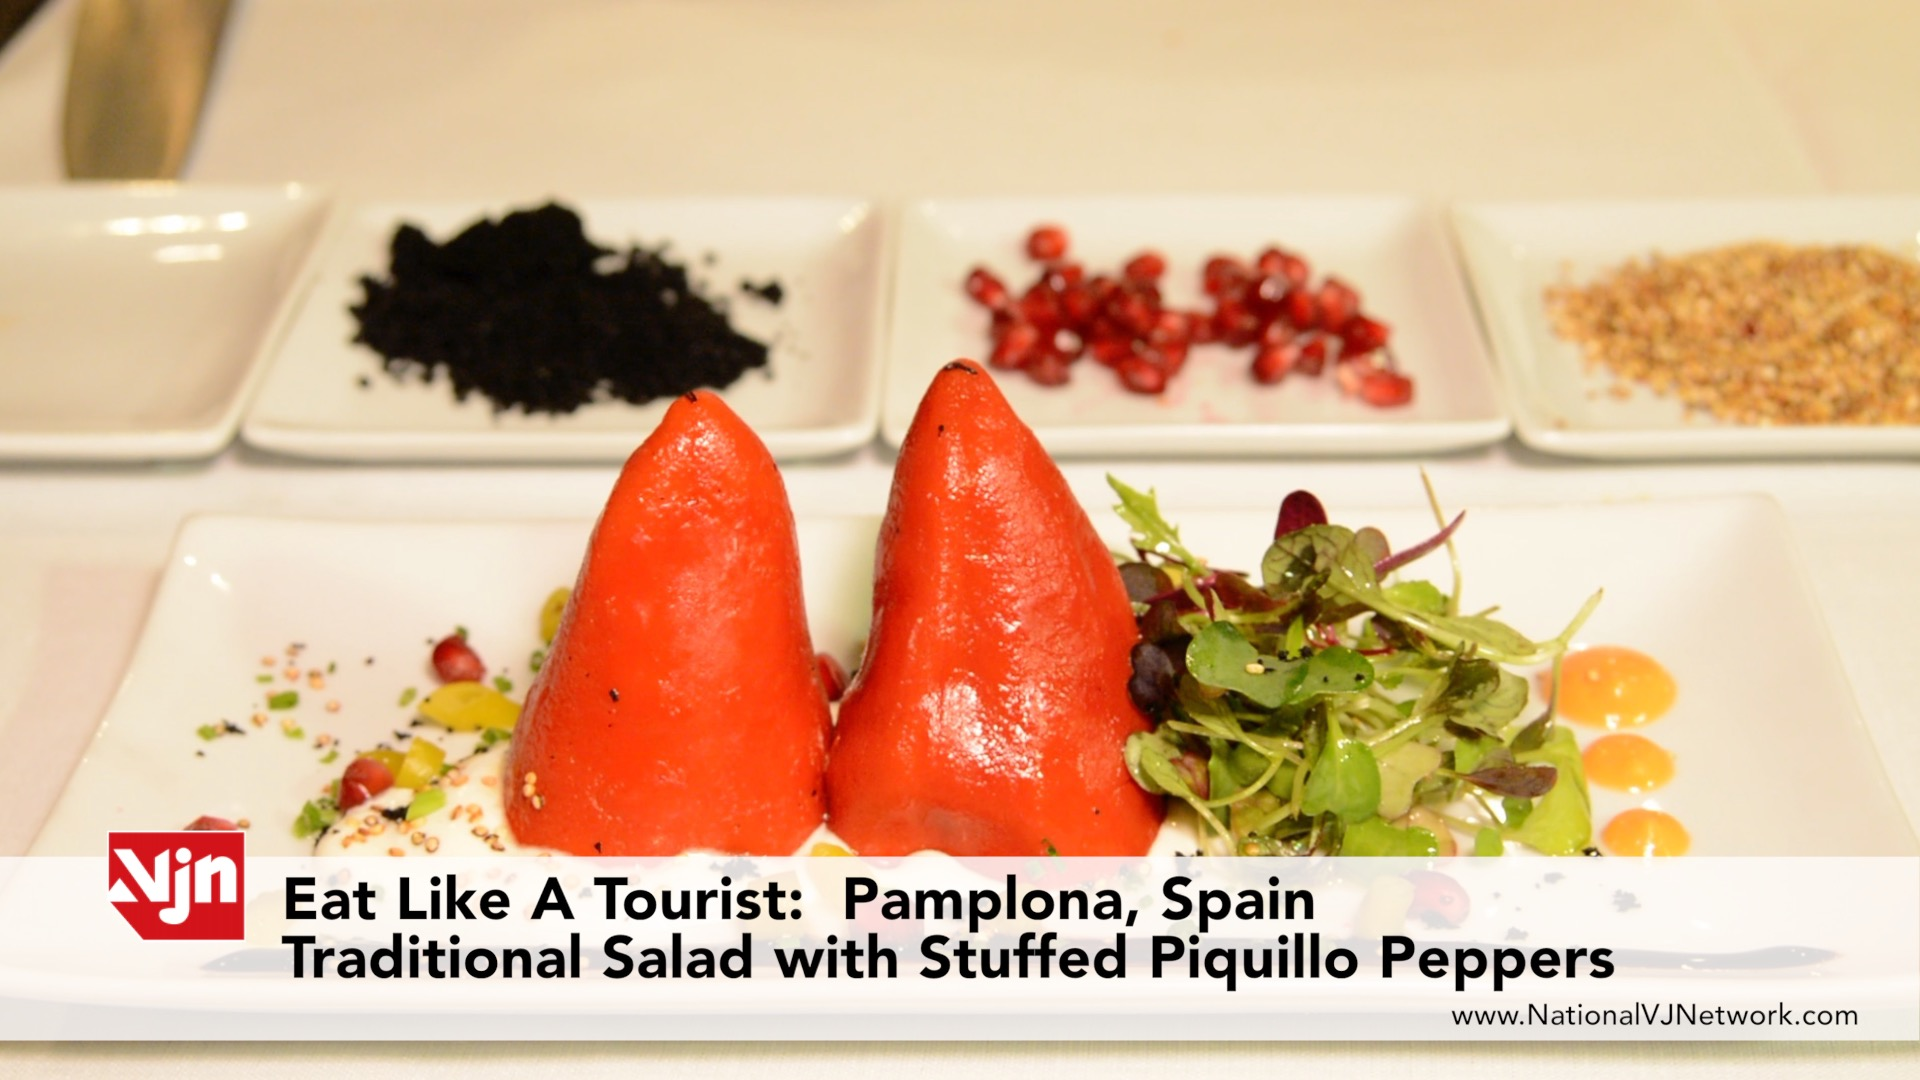 How Make Spanish Stuffed Piquillo Peppers - Pamplona, Spain